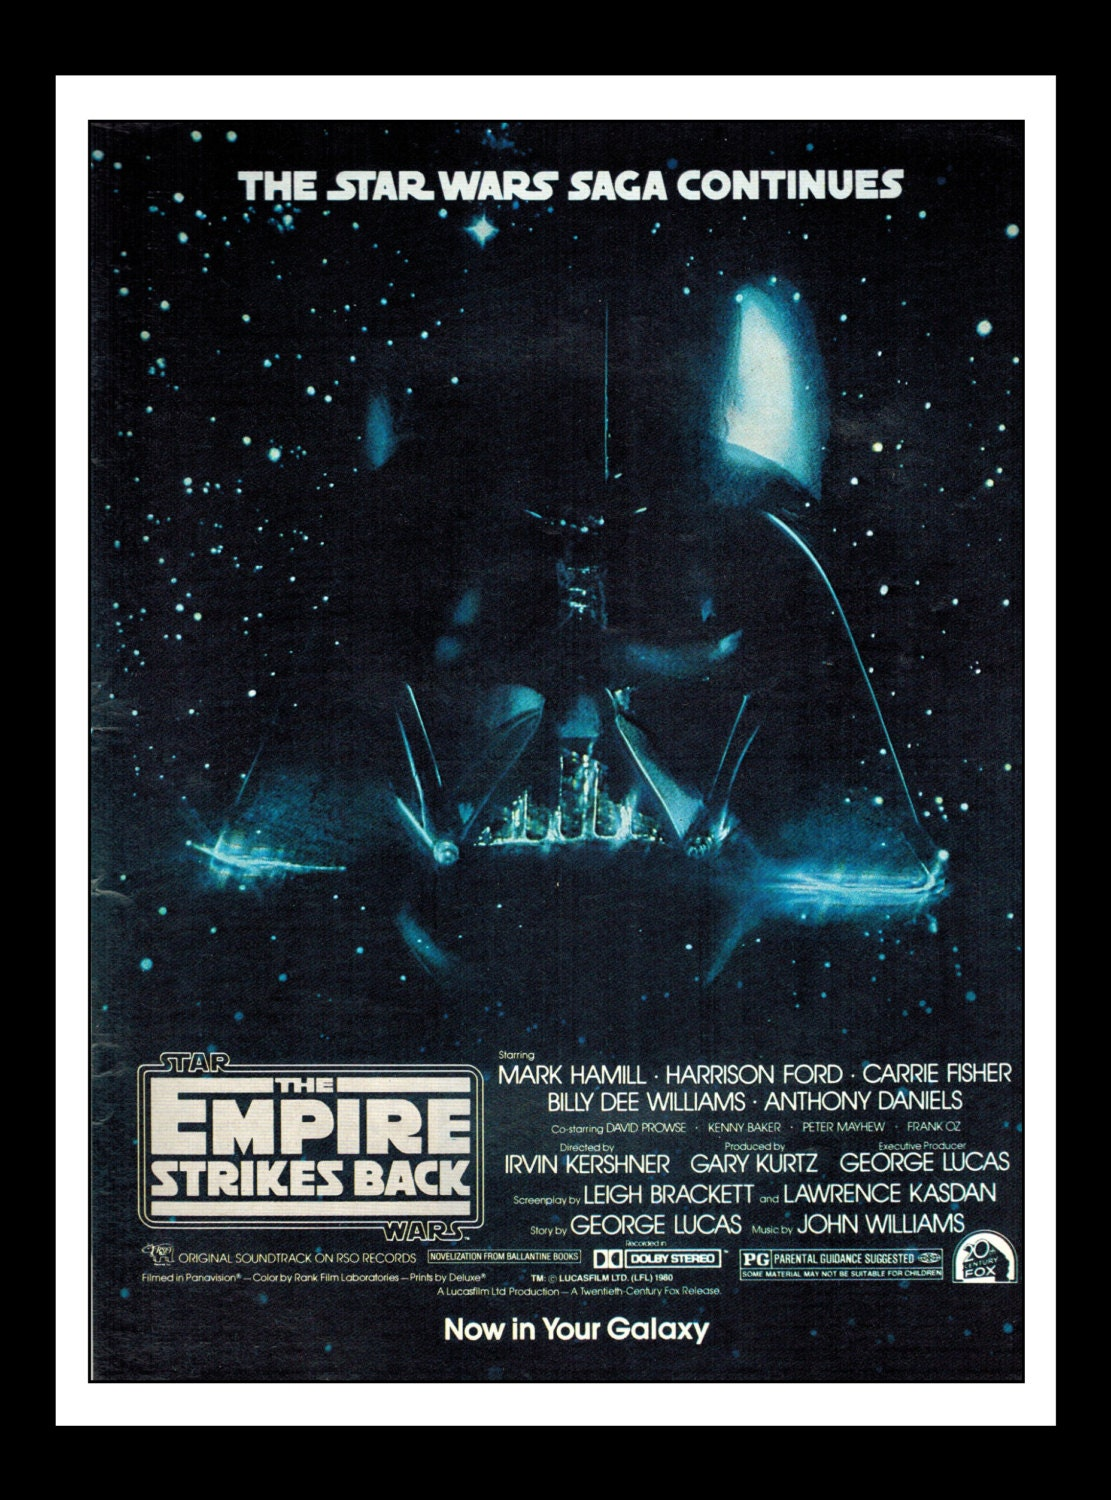 1980s and 1990s movie posters